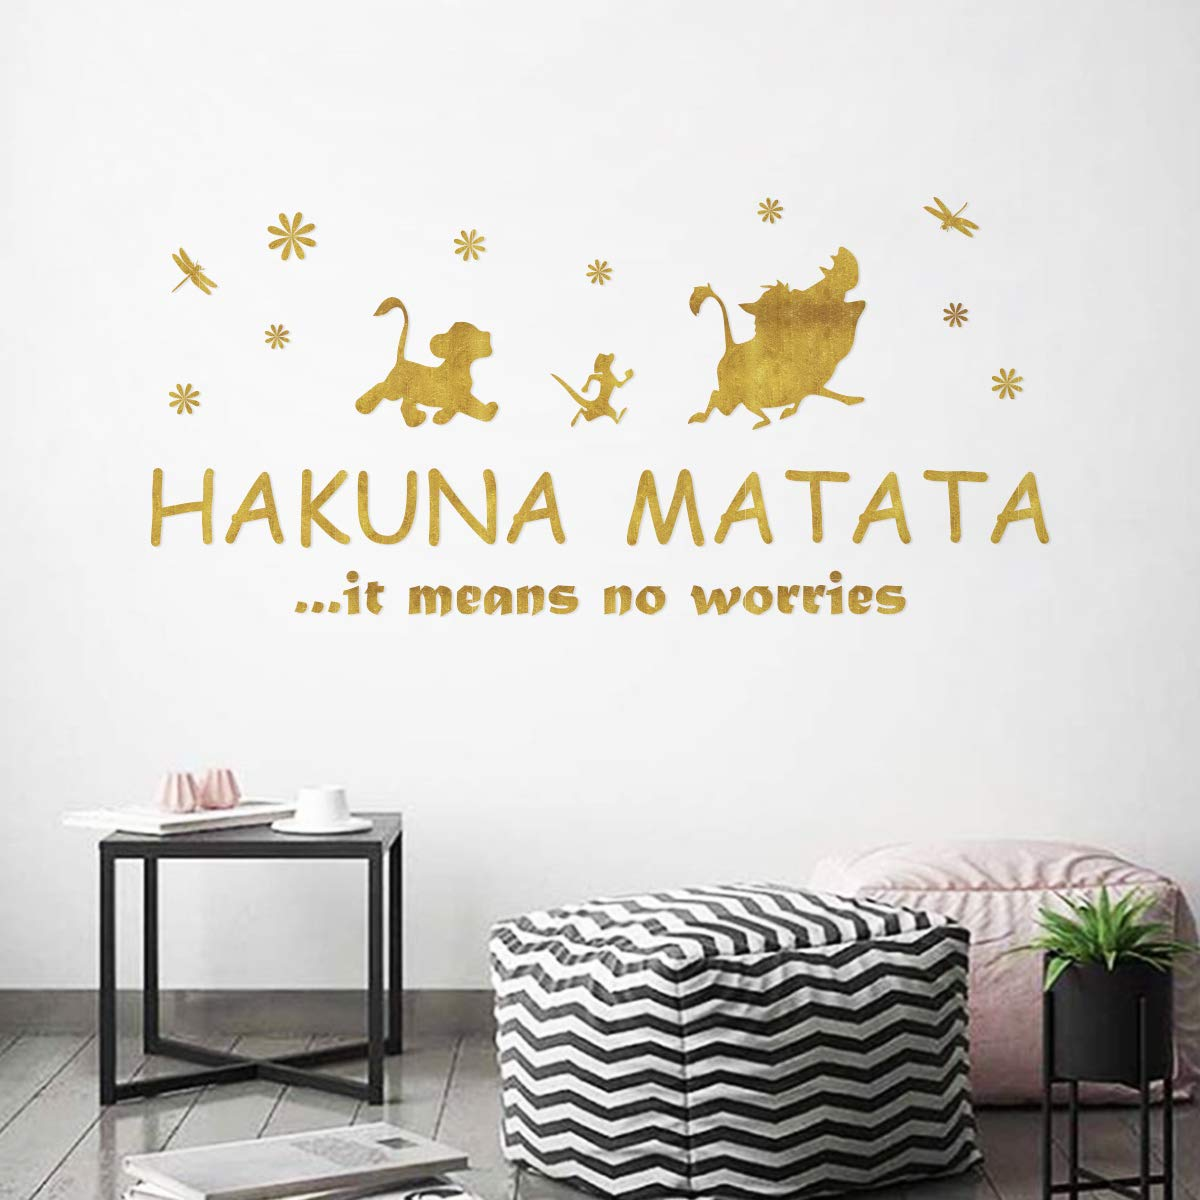 Ufengke Hakuna Matata Quotes Wall Stickers Golden Motivational Words Letters Wall Decals Nursery Wall Art Decor For Kids Bedroom Living Room Buy Online In Cambodia At Cambodia Desertcart Com Productid 171567040